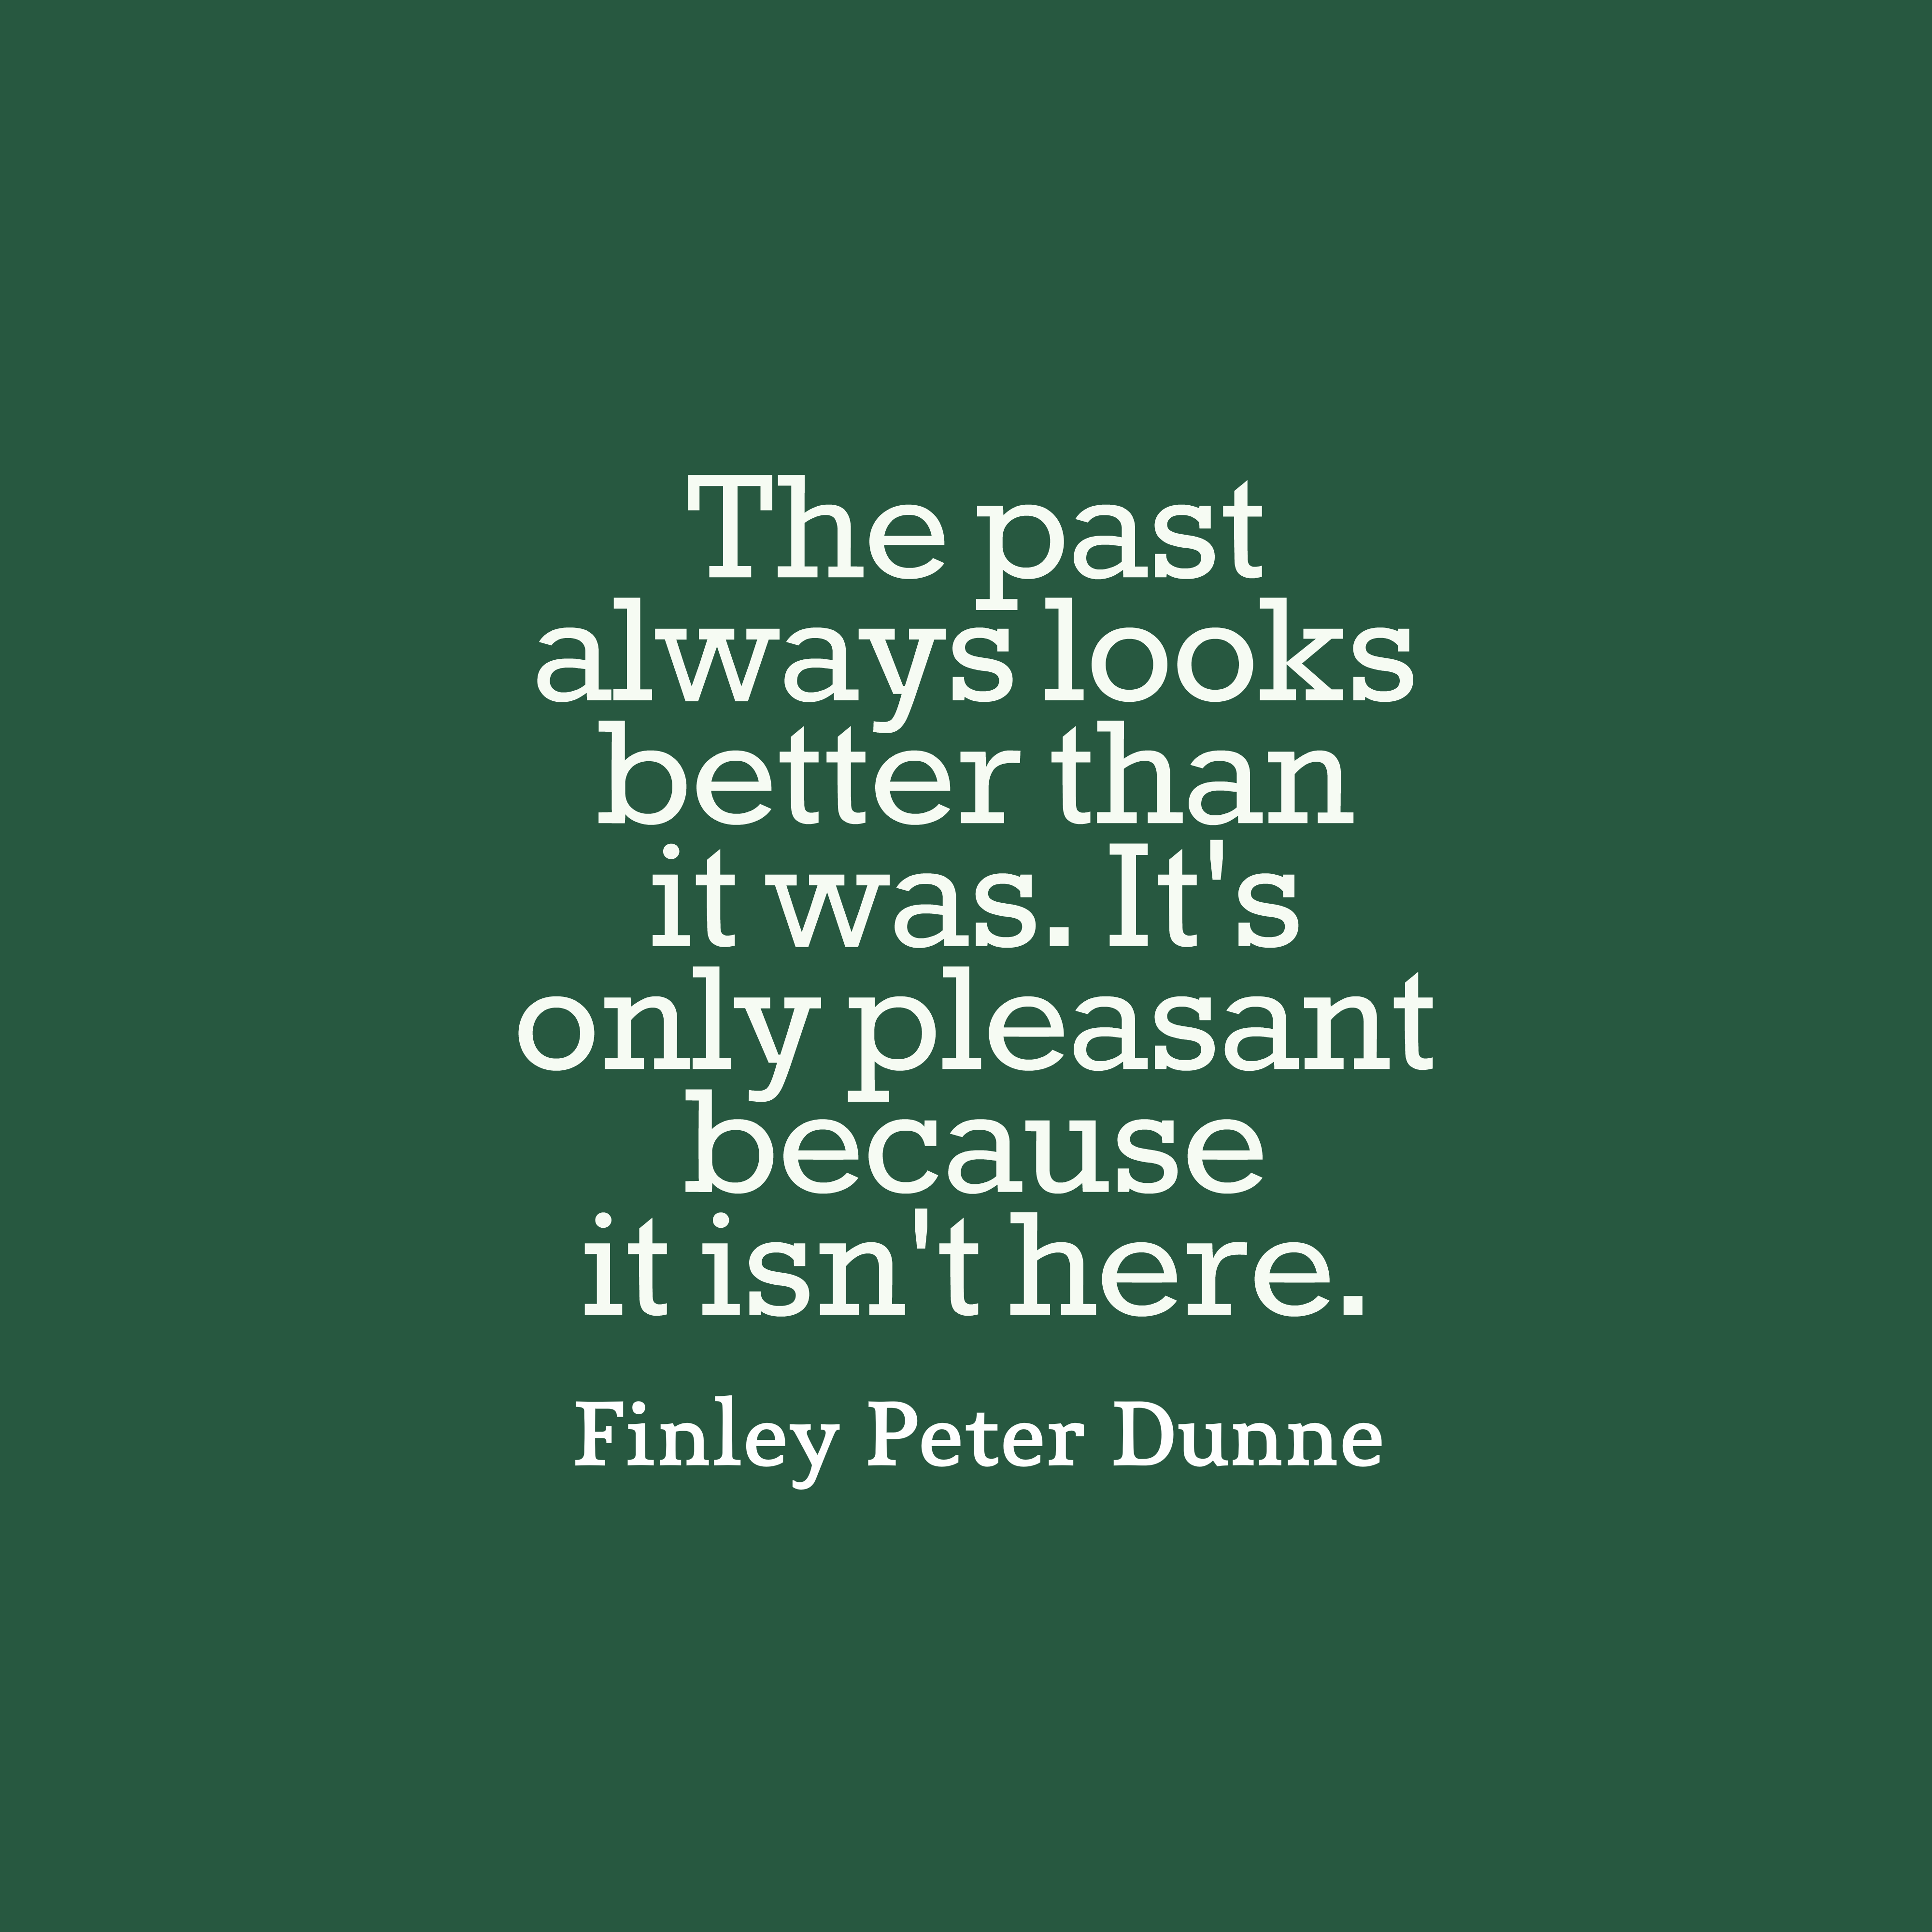 Quotes image of The past always looks better than it was. It's only pleasant because it isn't here.